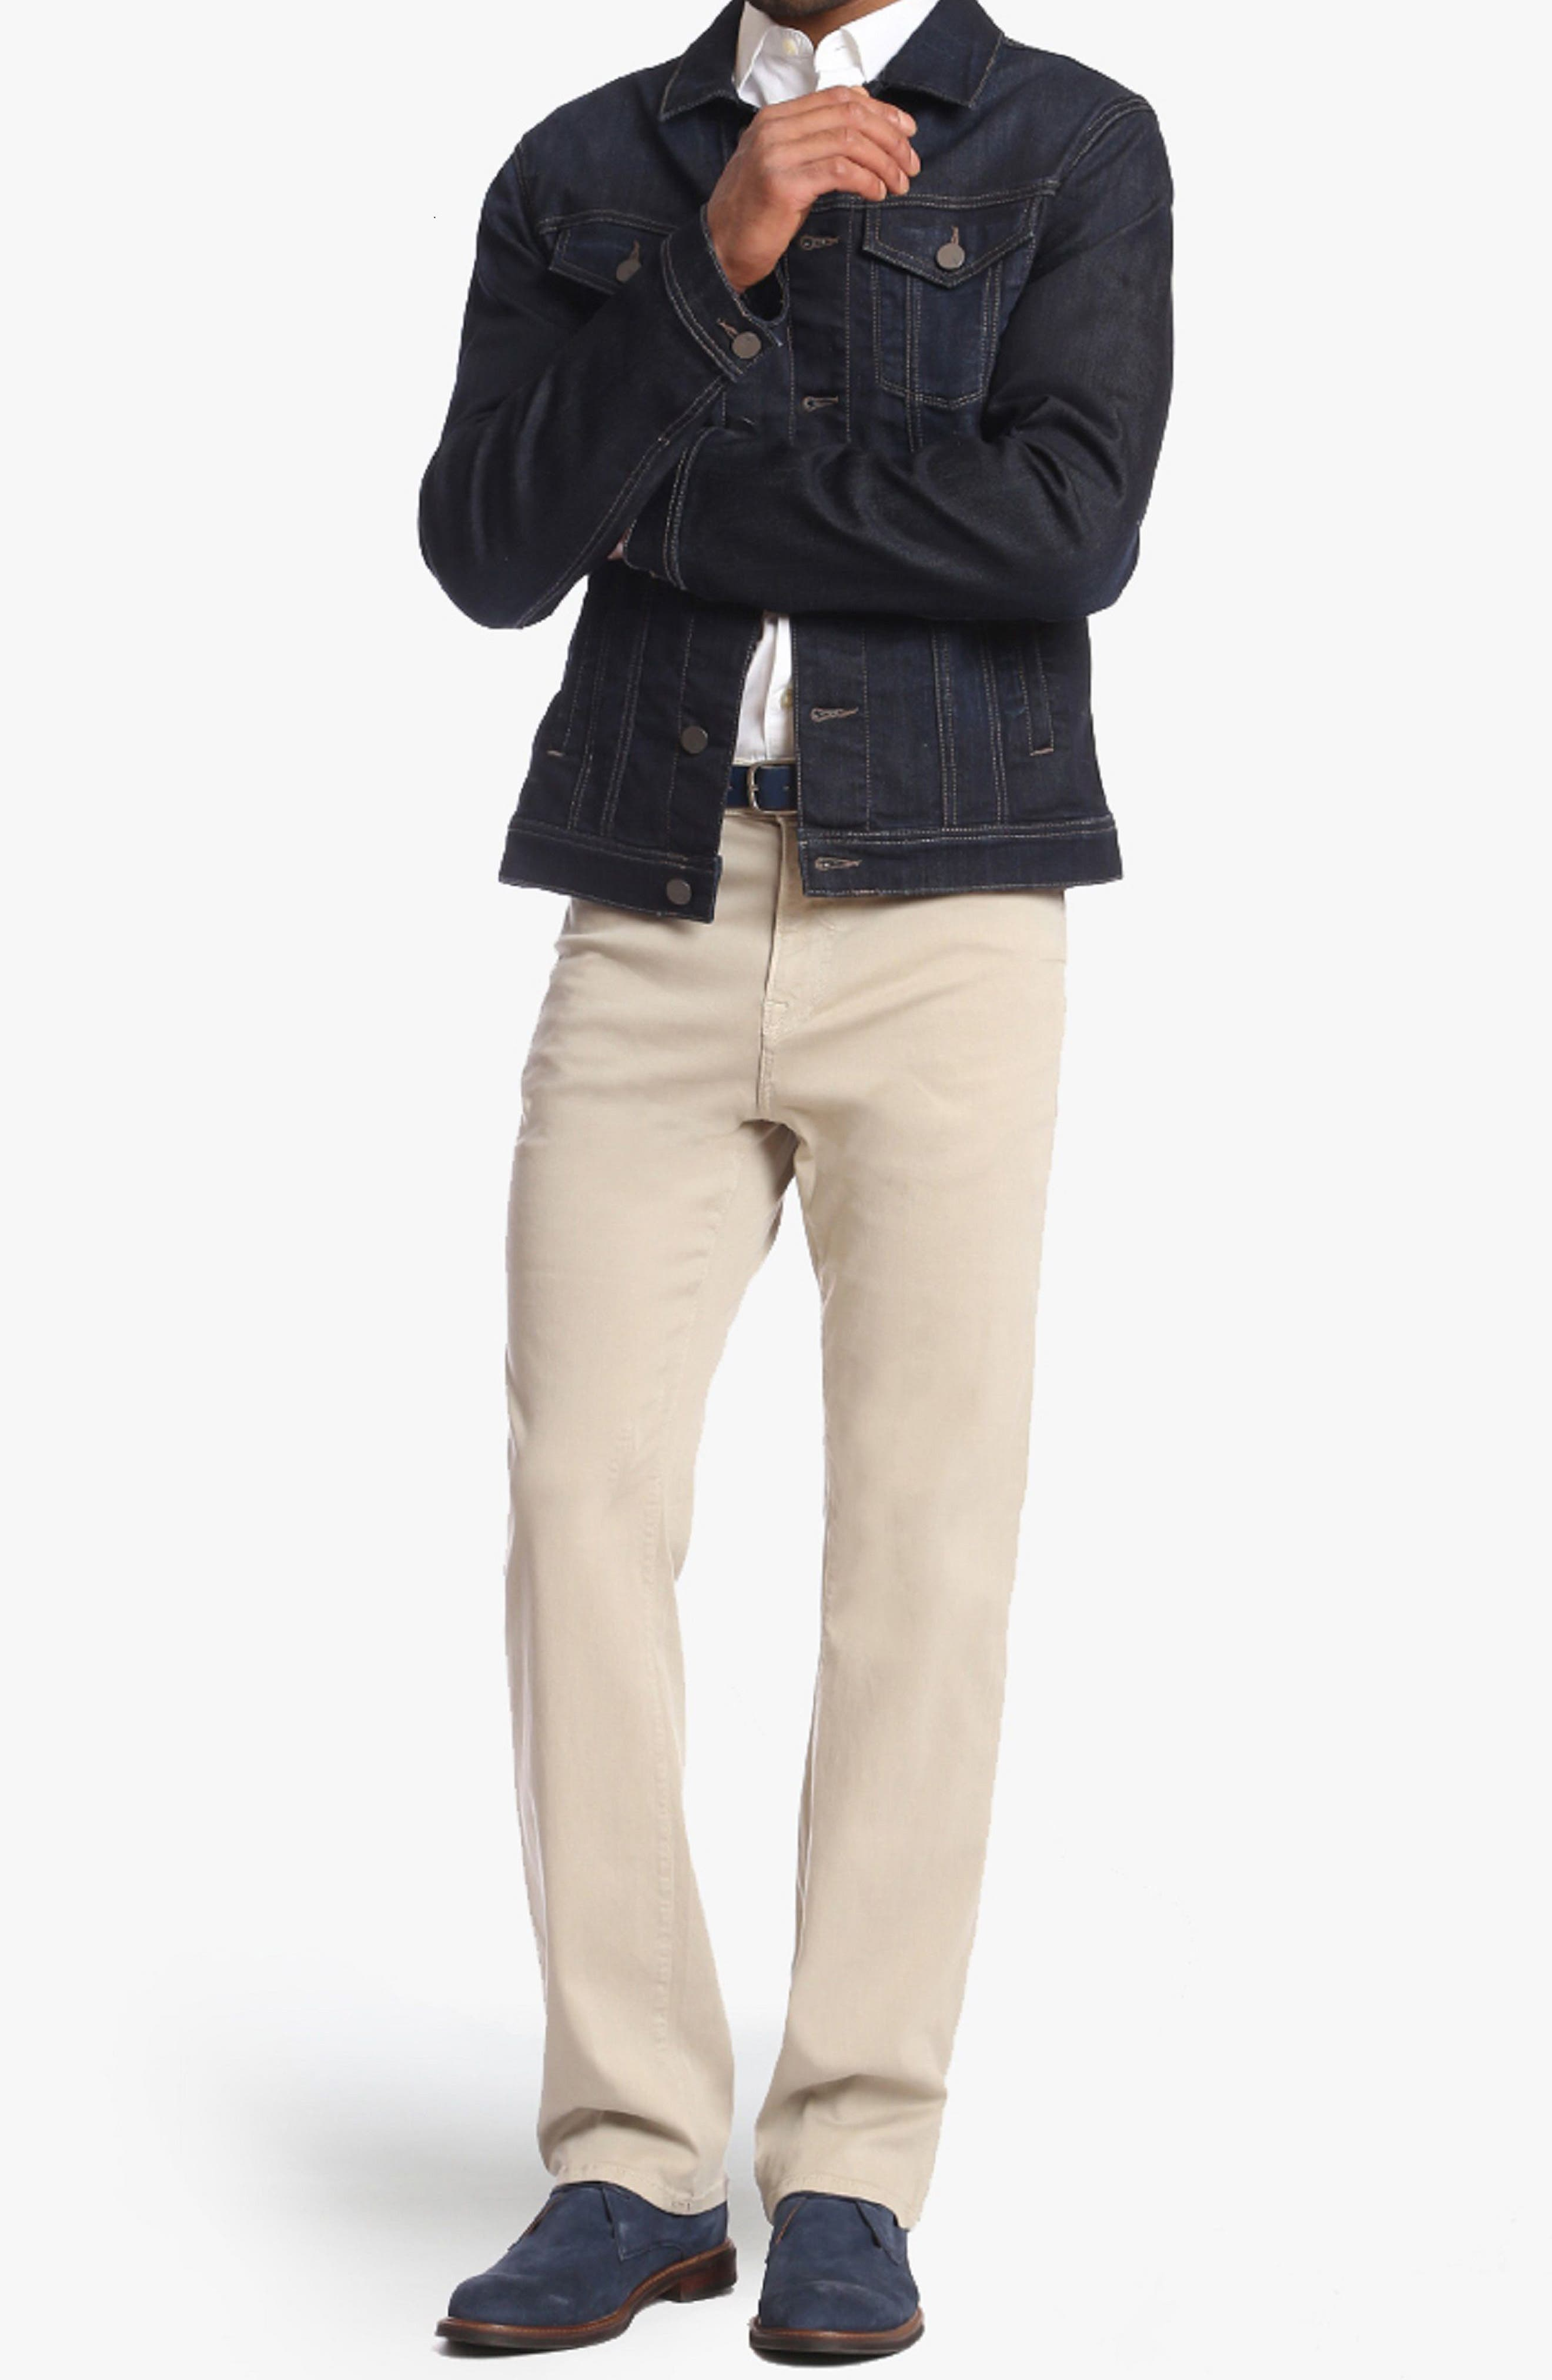 Charisma Relaxed Fit Jeans,                             Alternate thumbnail 4, color,                             STONE TWILL